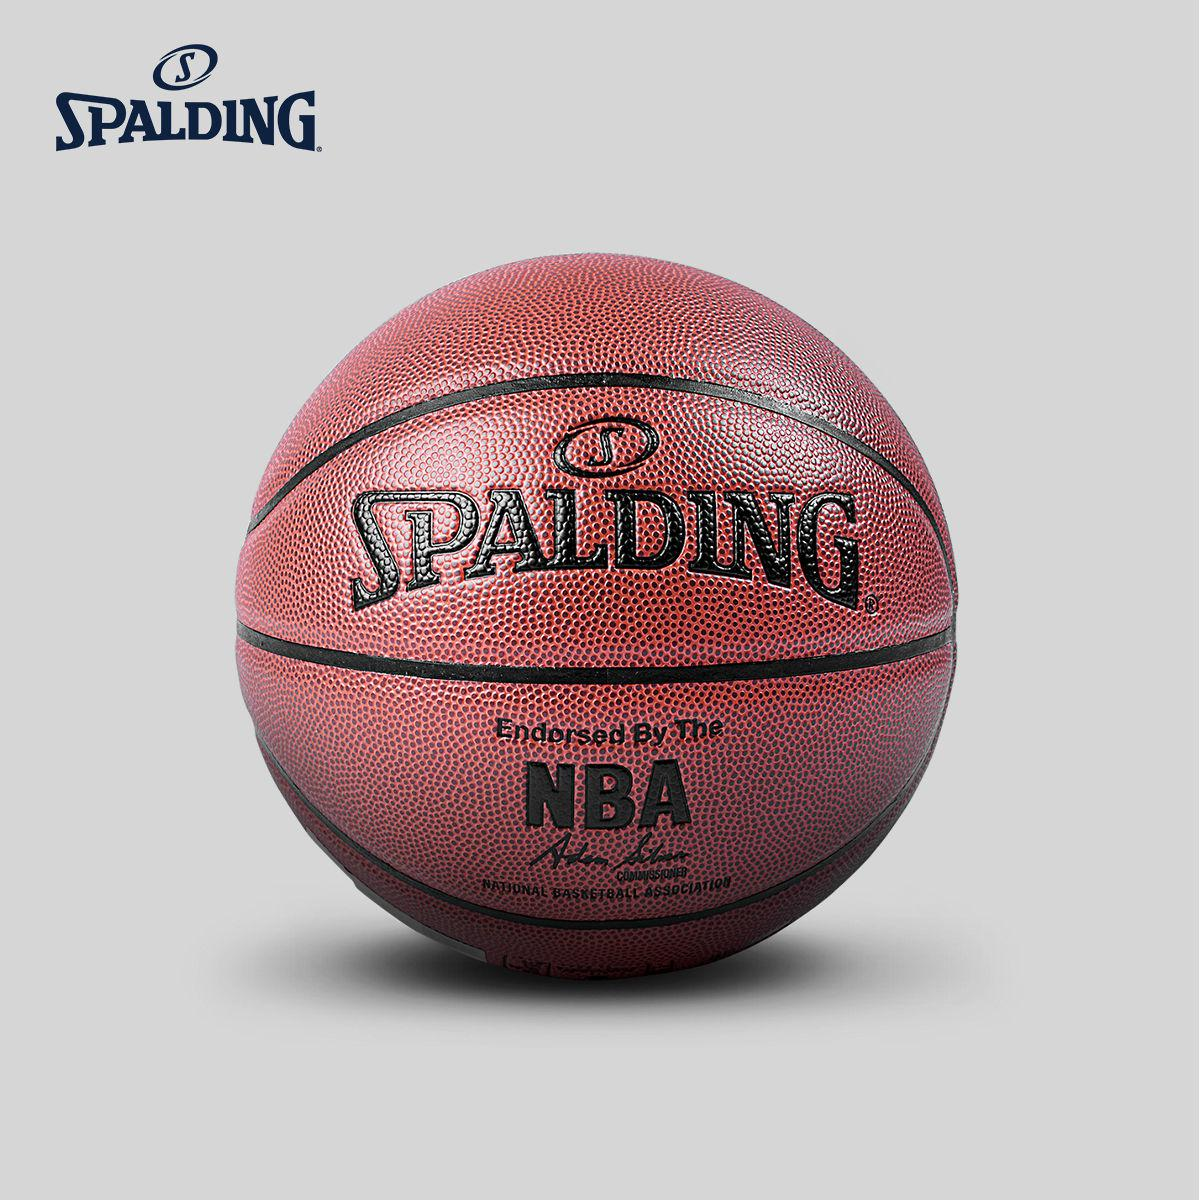 SPALDING color basketball outdoor sports ball youth basketball wear-resistant PU material indoor outdoor basketball